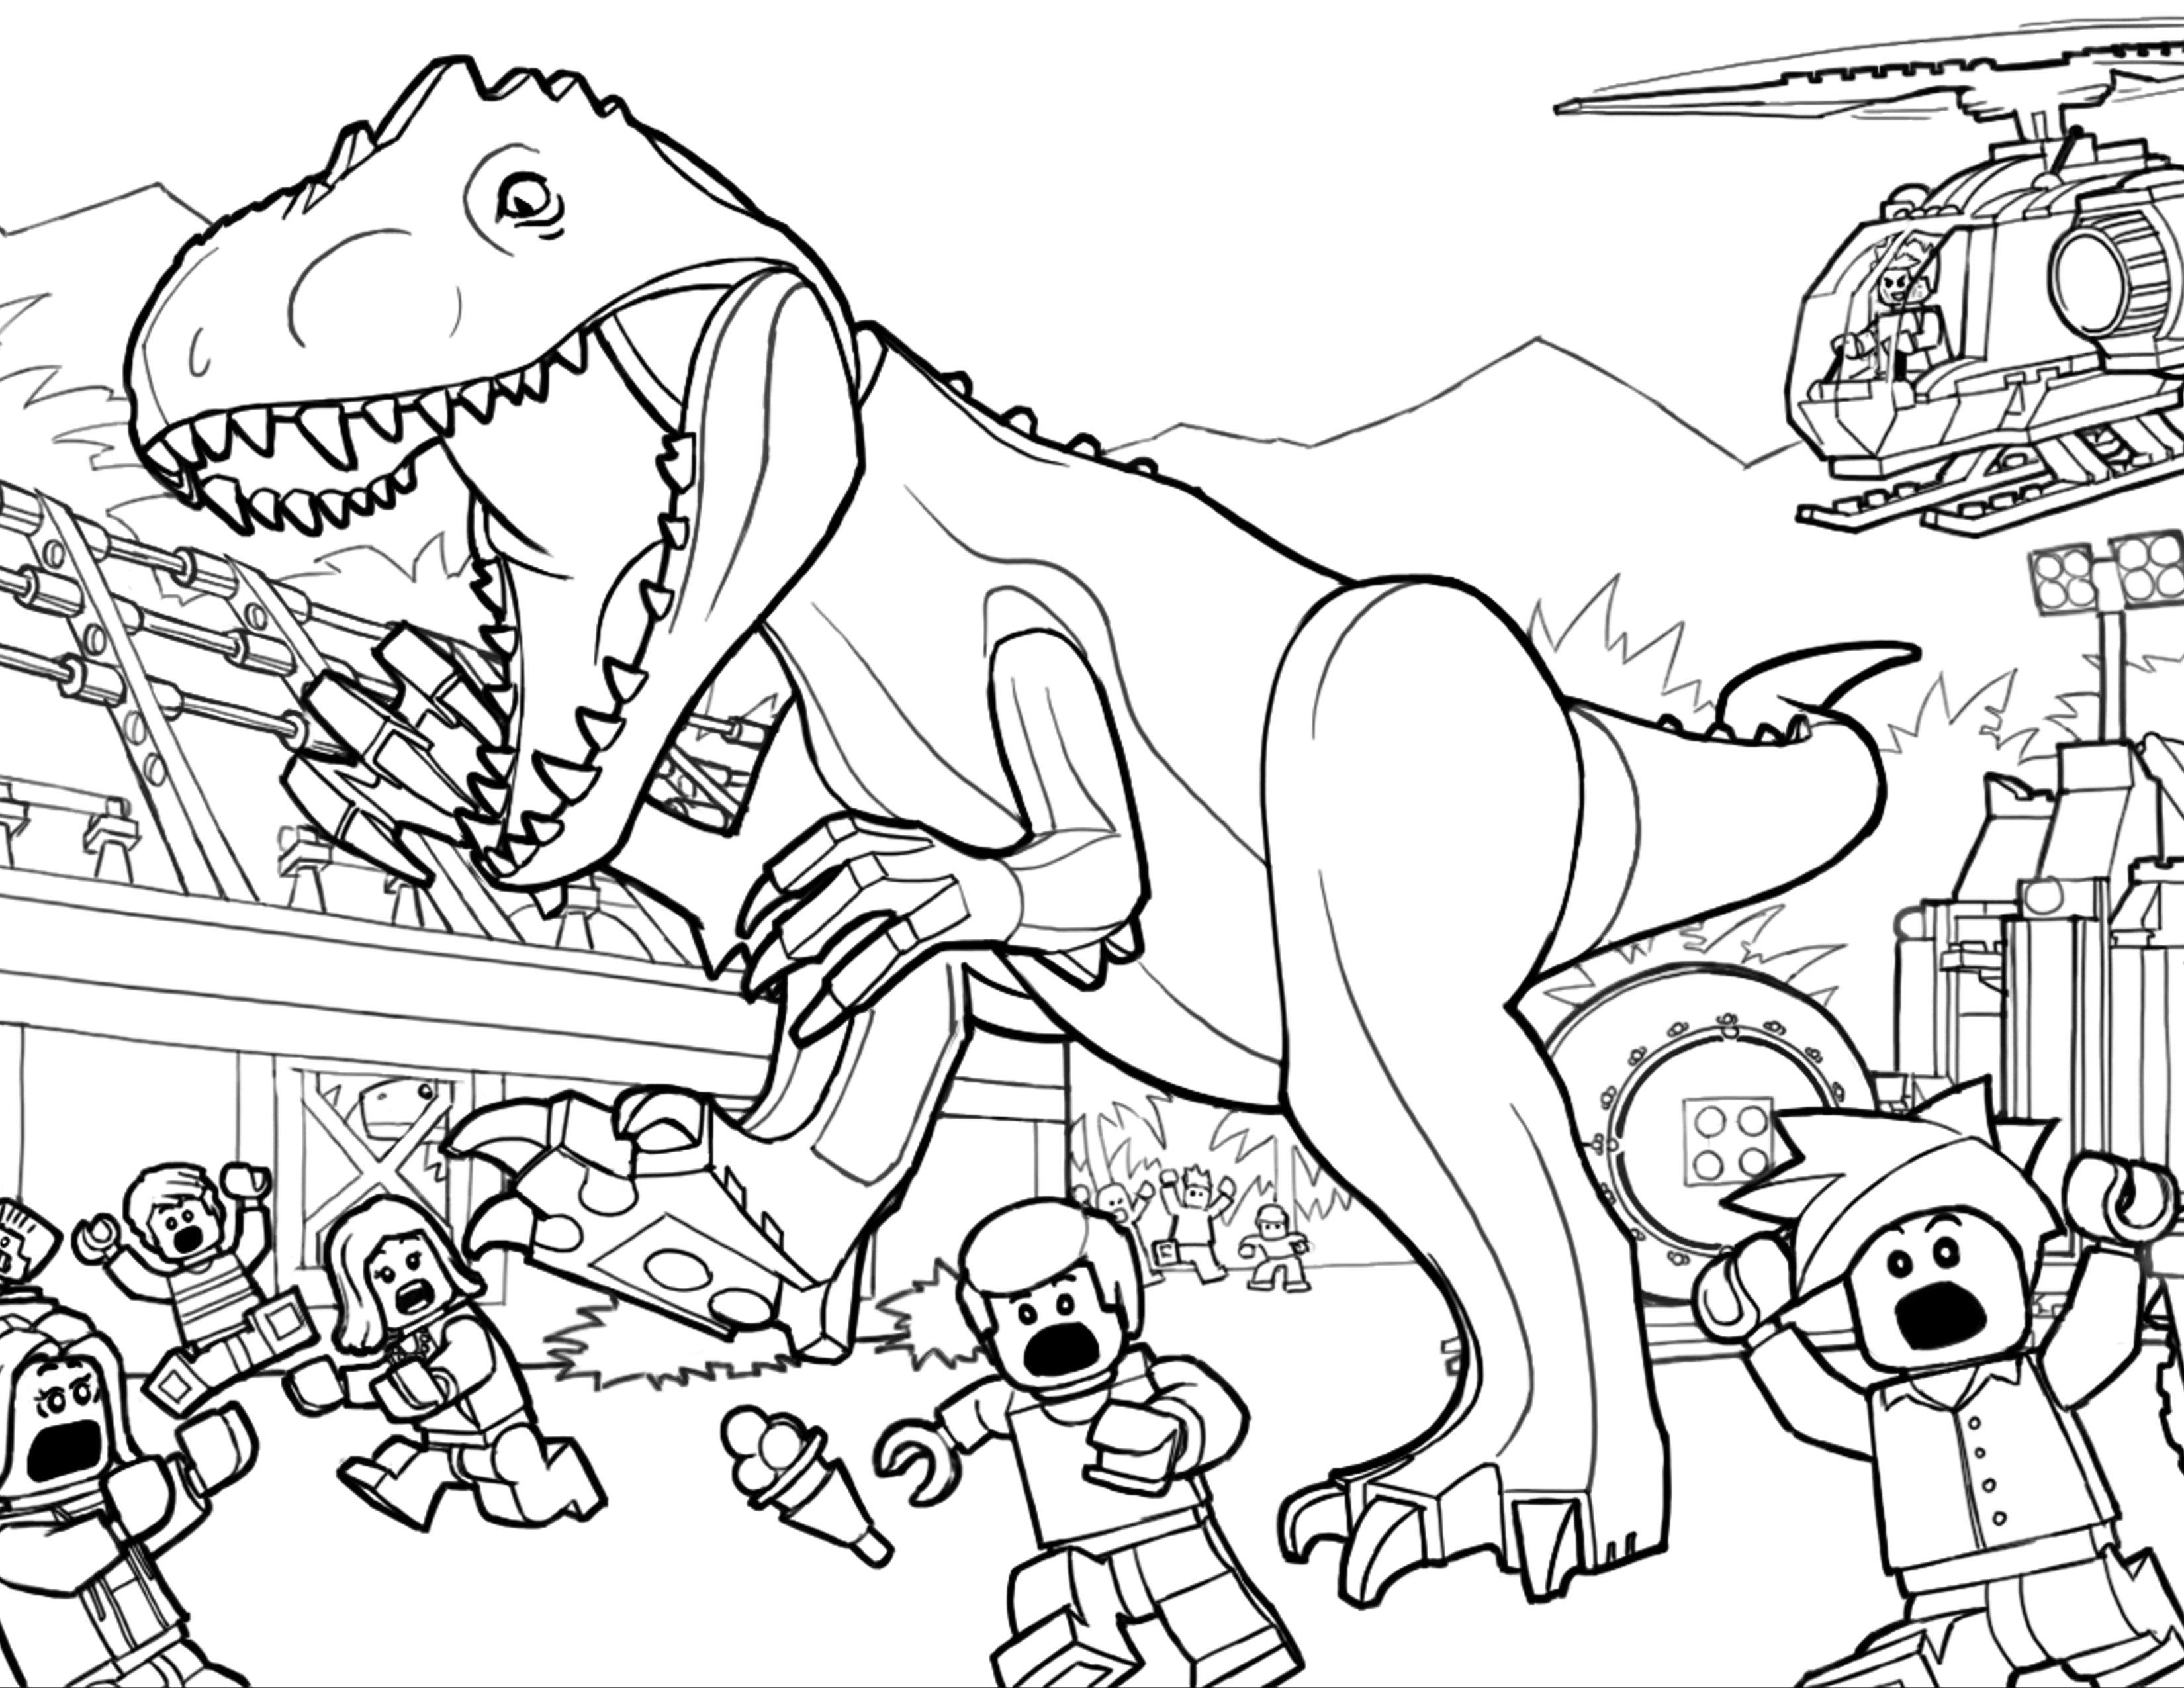 t rex colouring pictures trex coloring pages best coloring pages for kids rex t colouring pictures